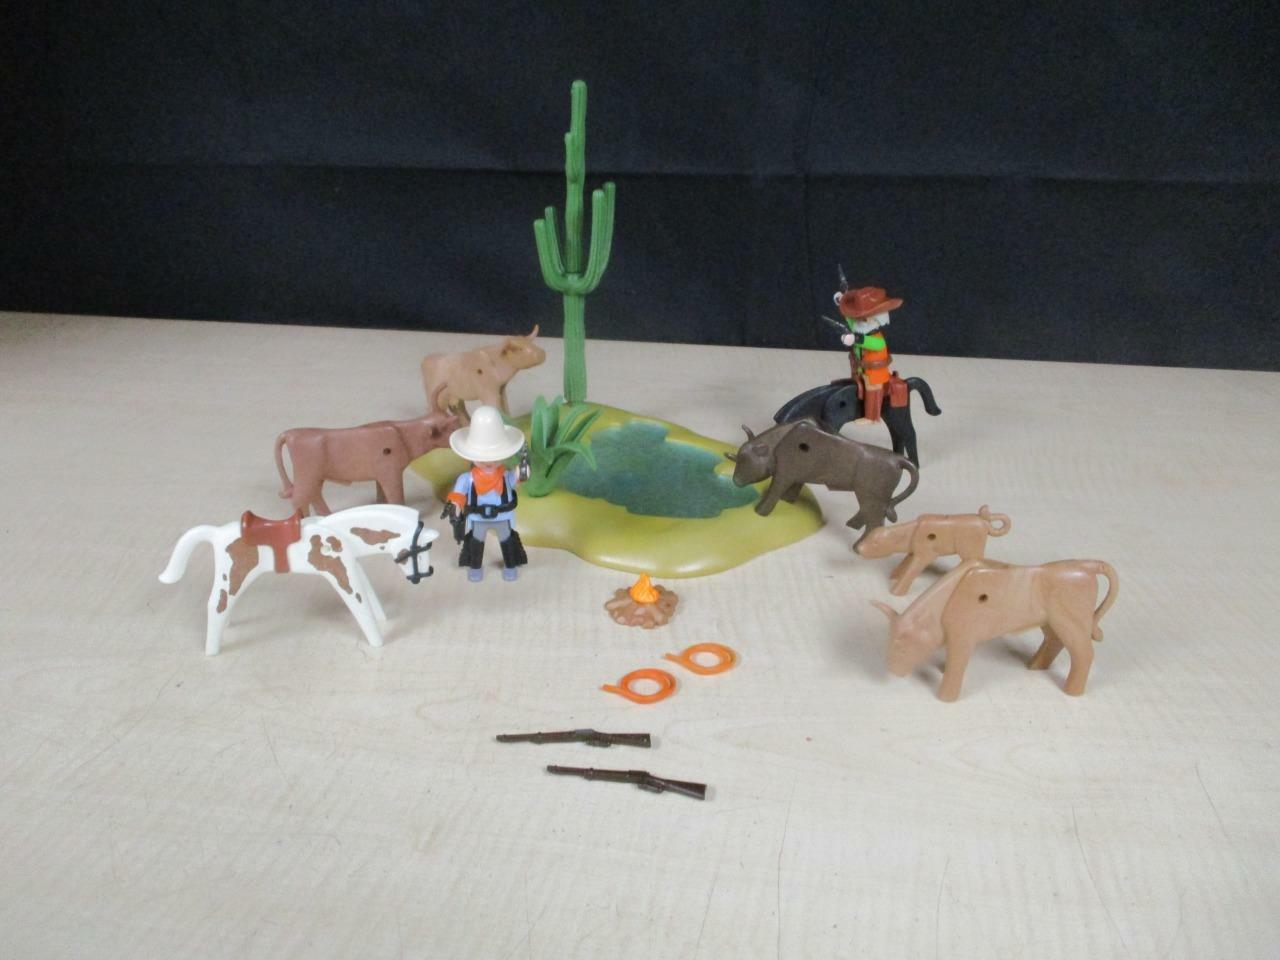 Playmobil RARE Western Water Hole 3801 w Long Horn Cattle, Cowboys 95% complete